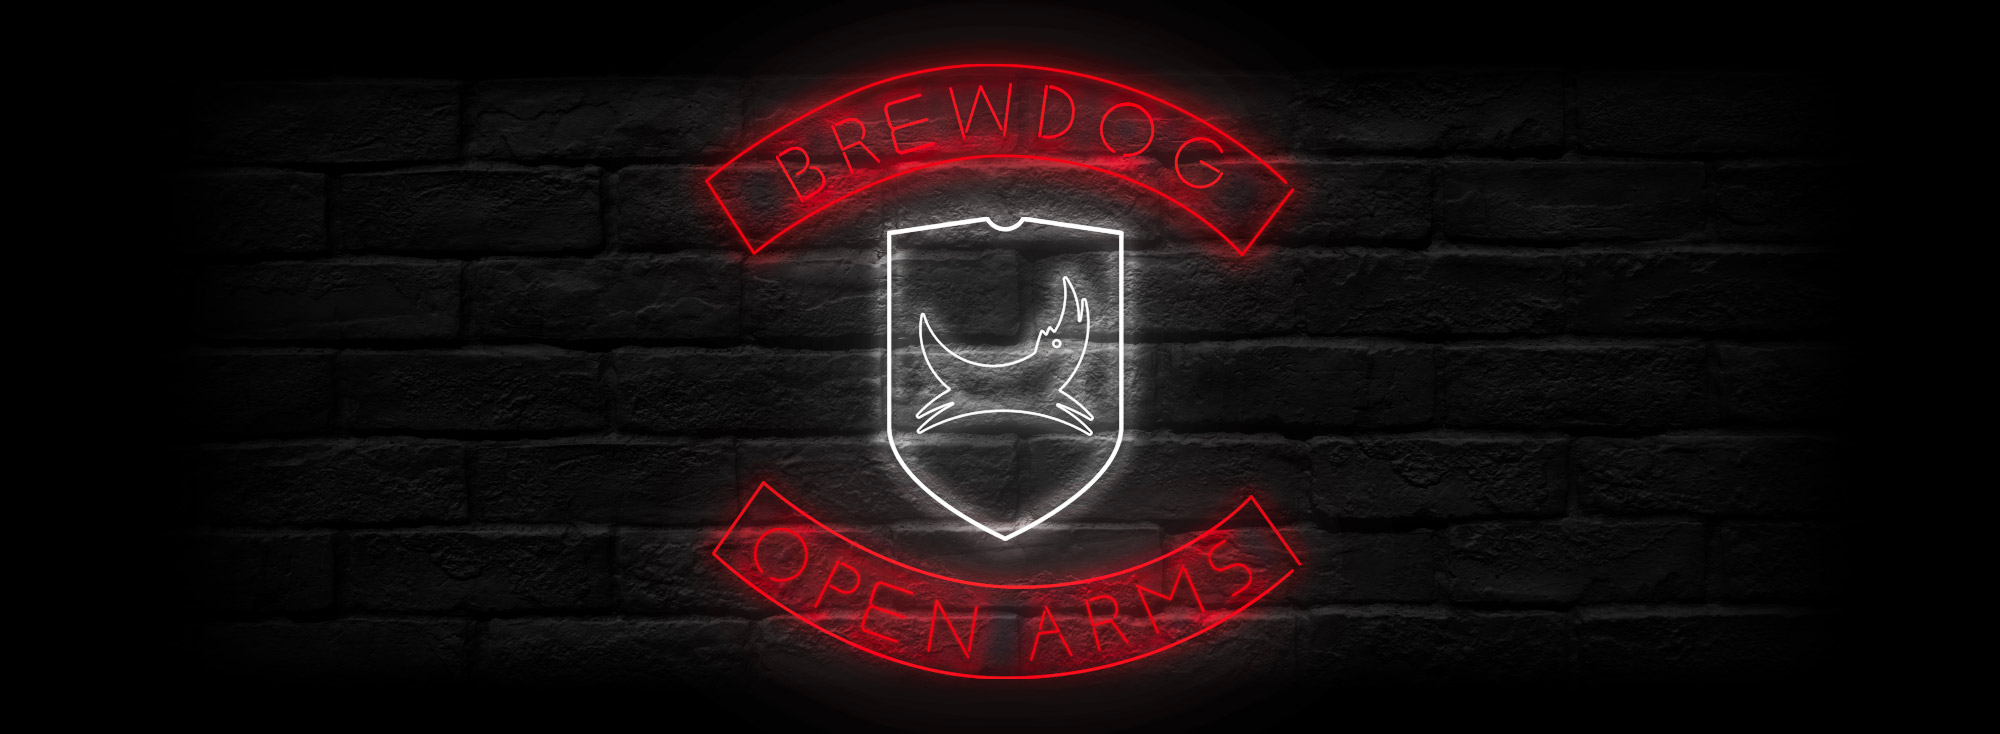 Beer Talks and Pub Quizzes at Brewdog's Online Pub!